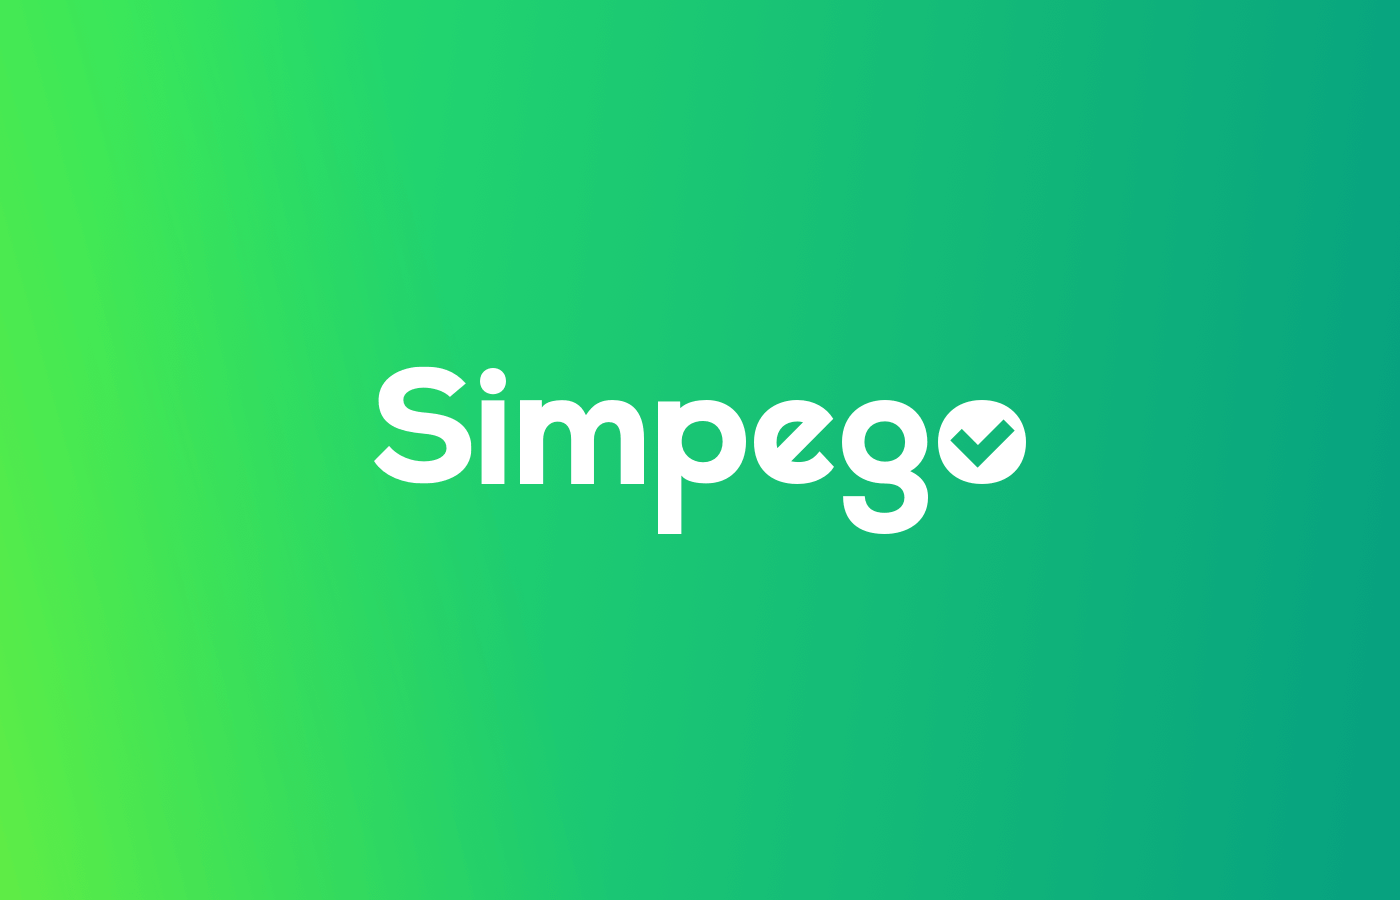 simpego_logo.png